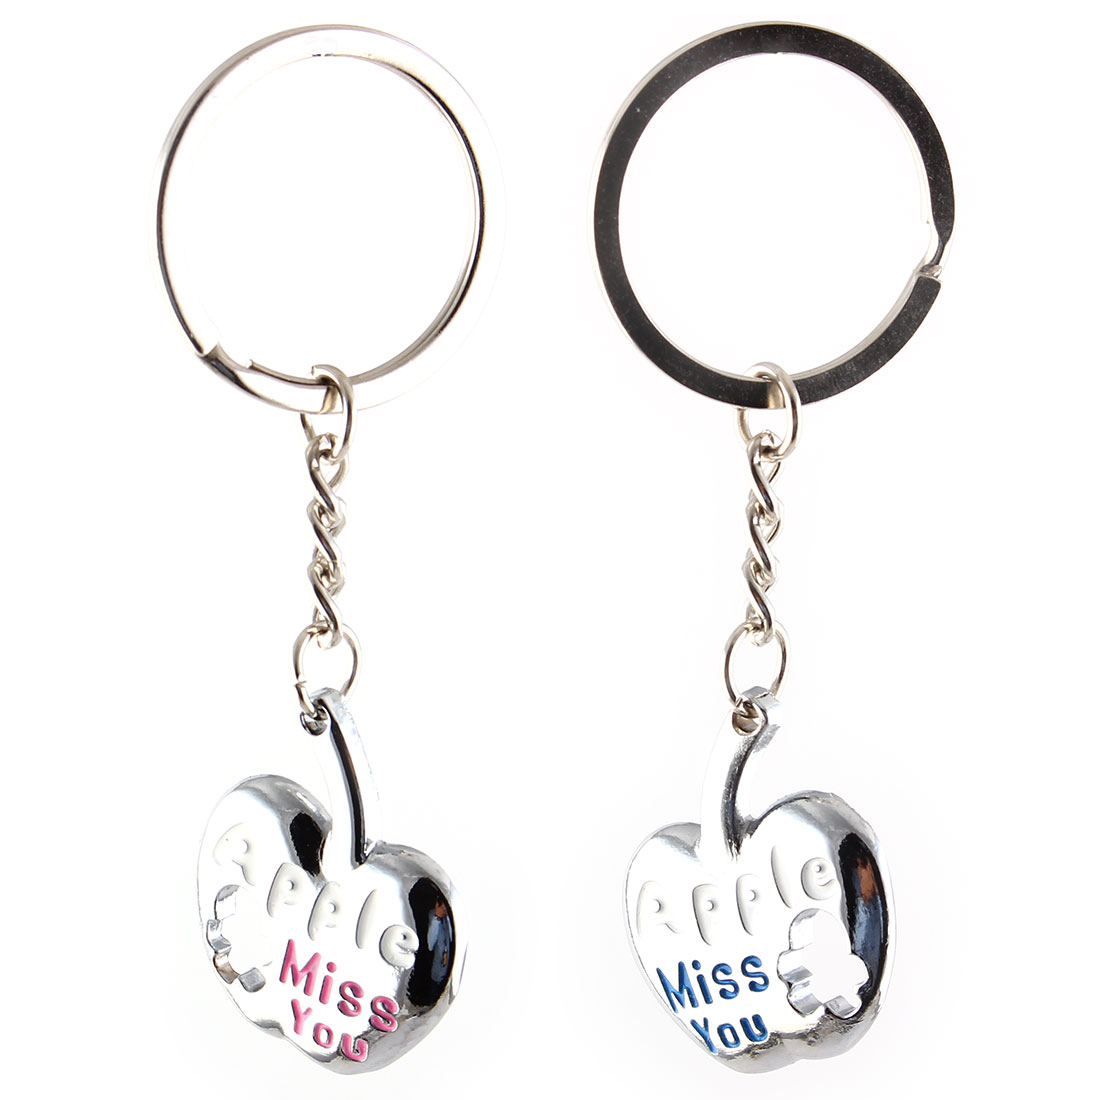 Miss You Print Apple Shaped Silver Tone Key Chain 2Pcs